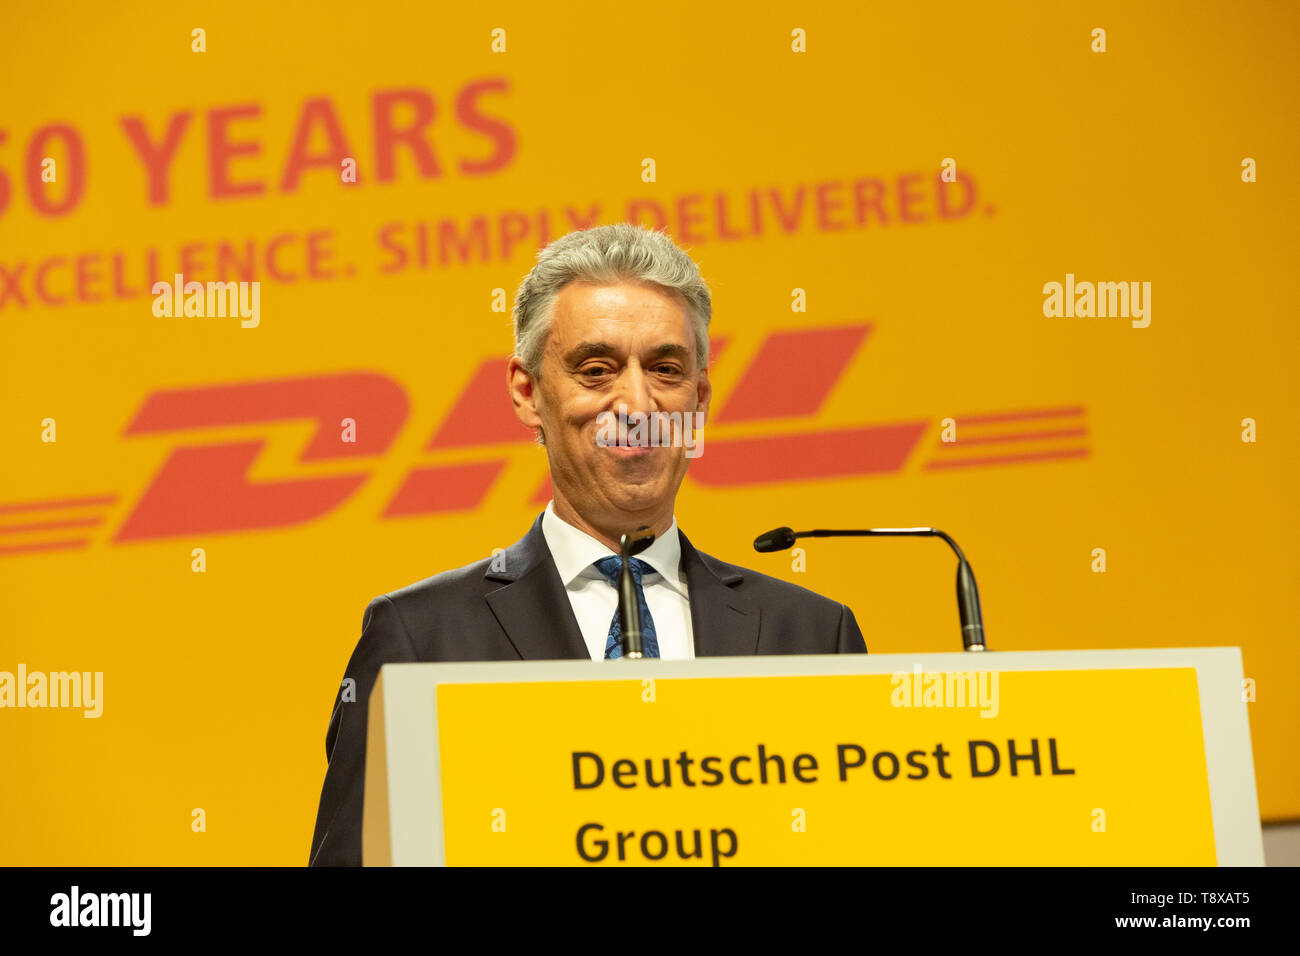 Bonn, Deutschland. 15th May, 2019. Germany, Bonn, May 5 2019, Deutsche Post DHL Annual General Meeting: CEO Frank Appel. Credit: Juergen Schwarz/Alamy Live News - Stock Image